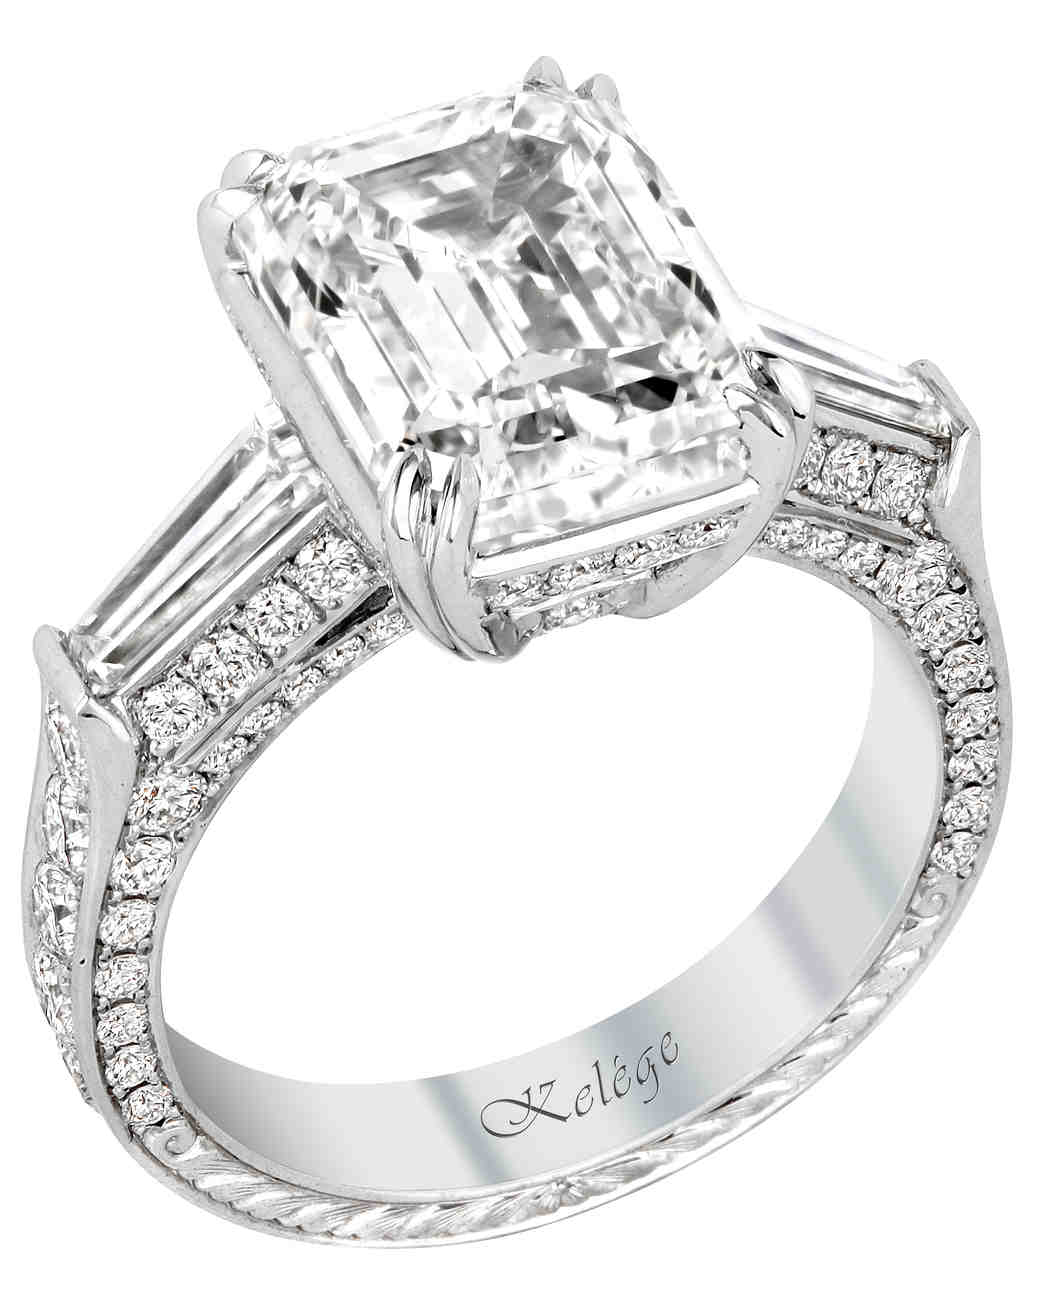 elegant emerald cut engagement rings martha stewart weddings - Wedding Ring Cuts